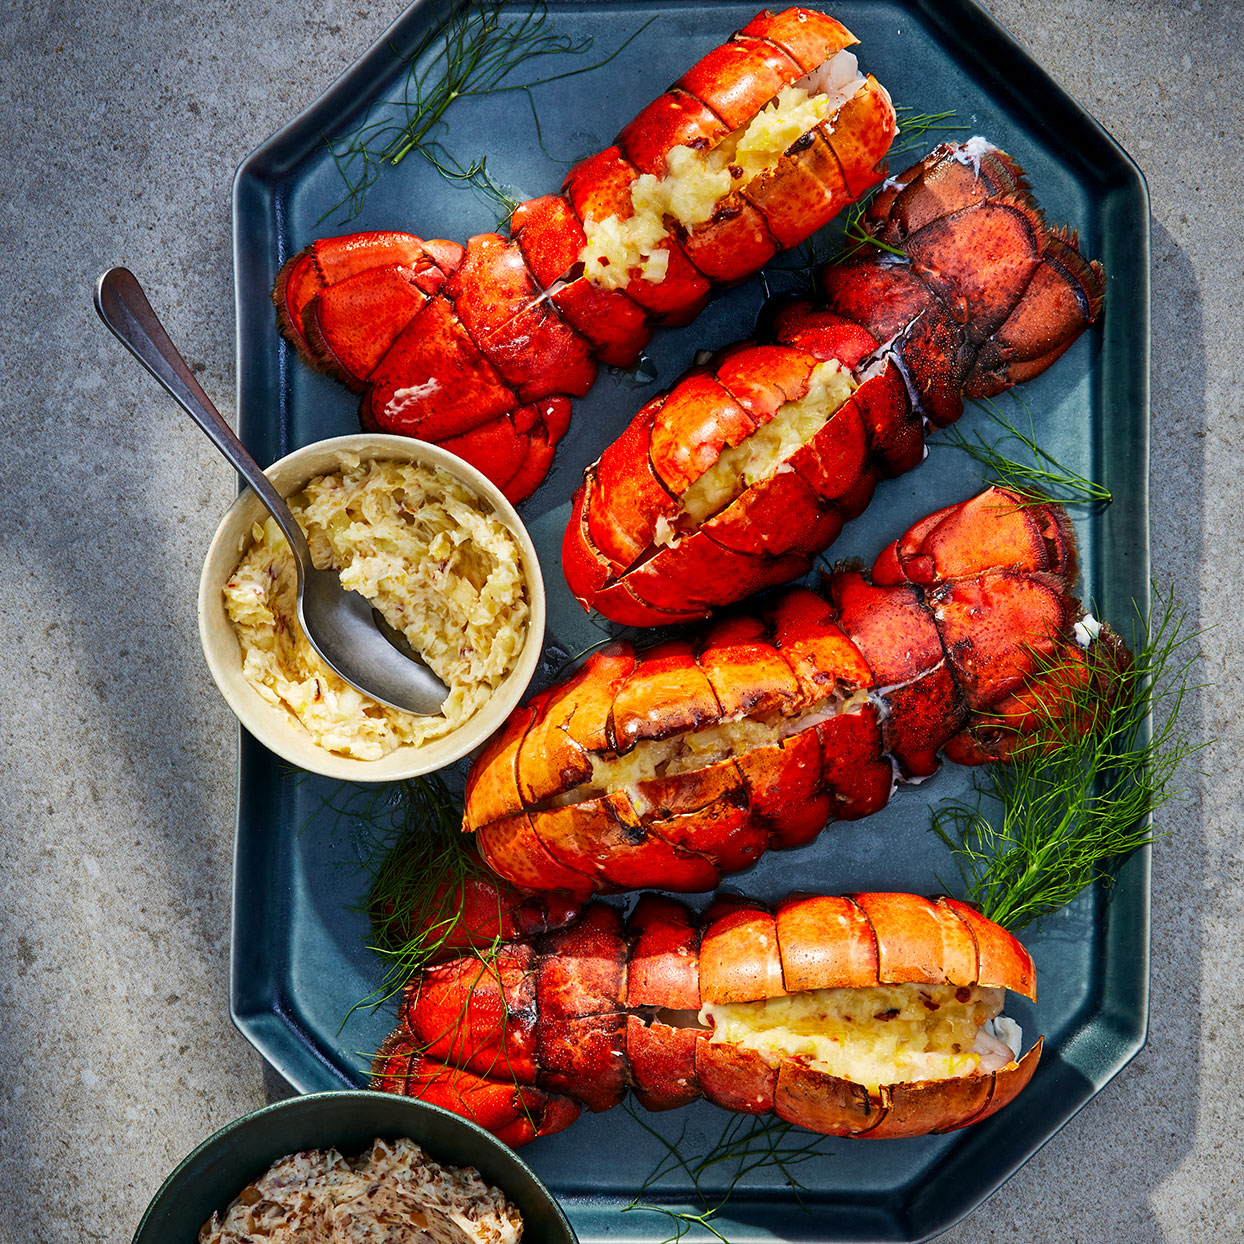 Broiled Lobster Tails Trusted Brands